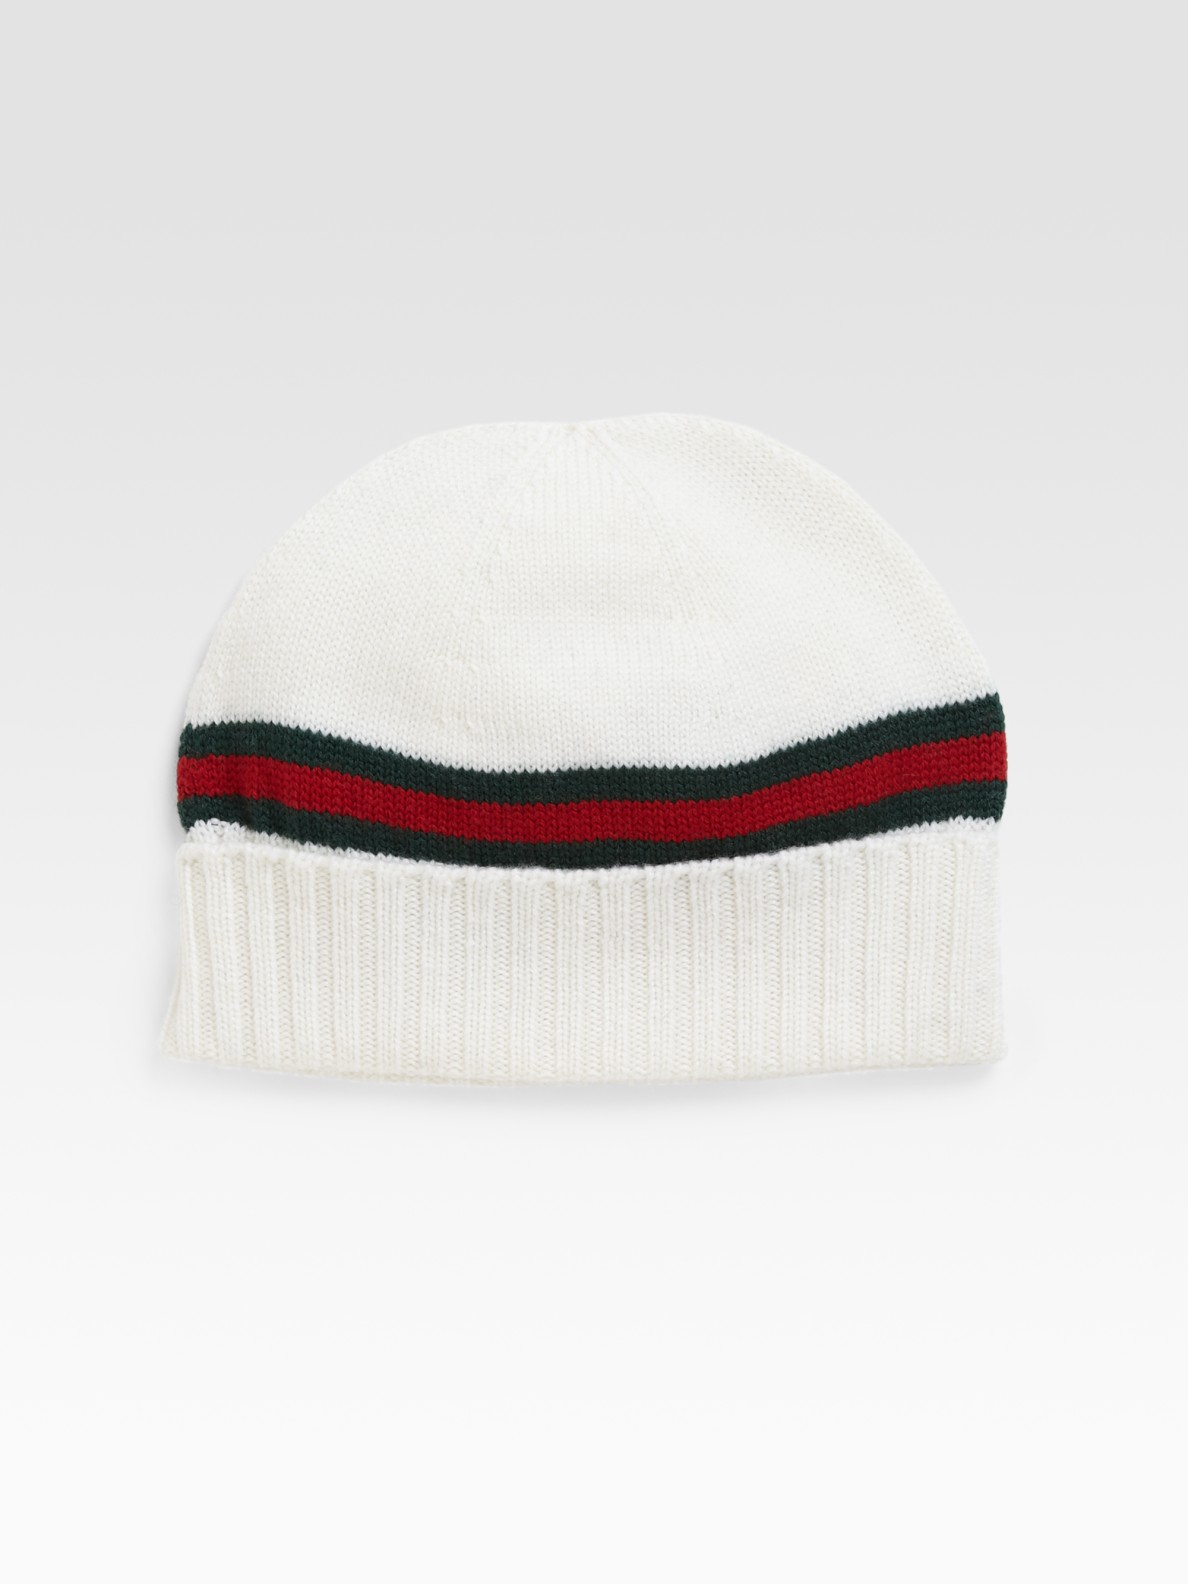 Gucci White Cotton Wide Brim Hat in White | Lyst |White Gucci Hat